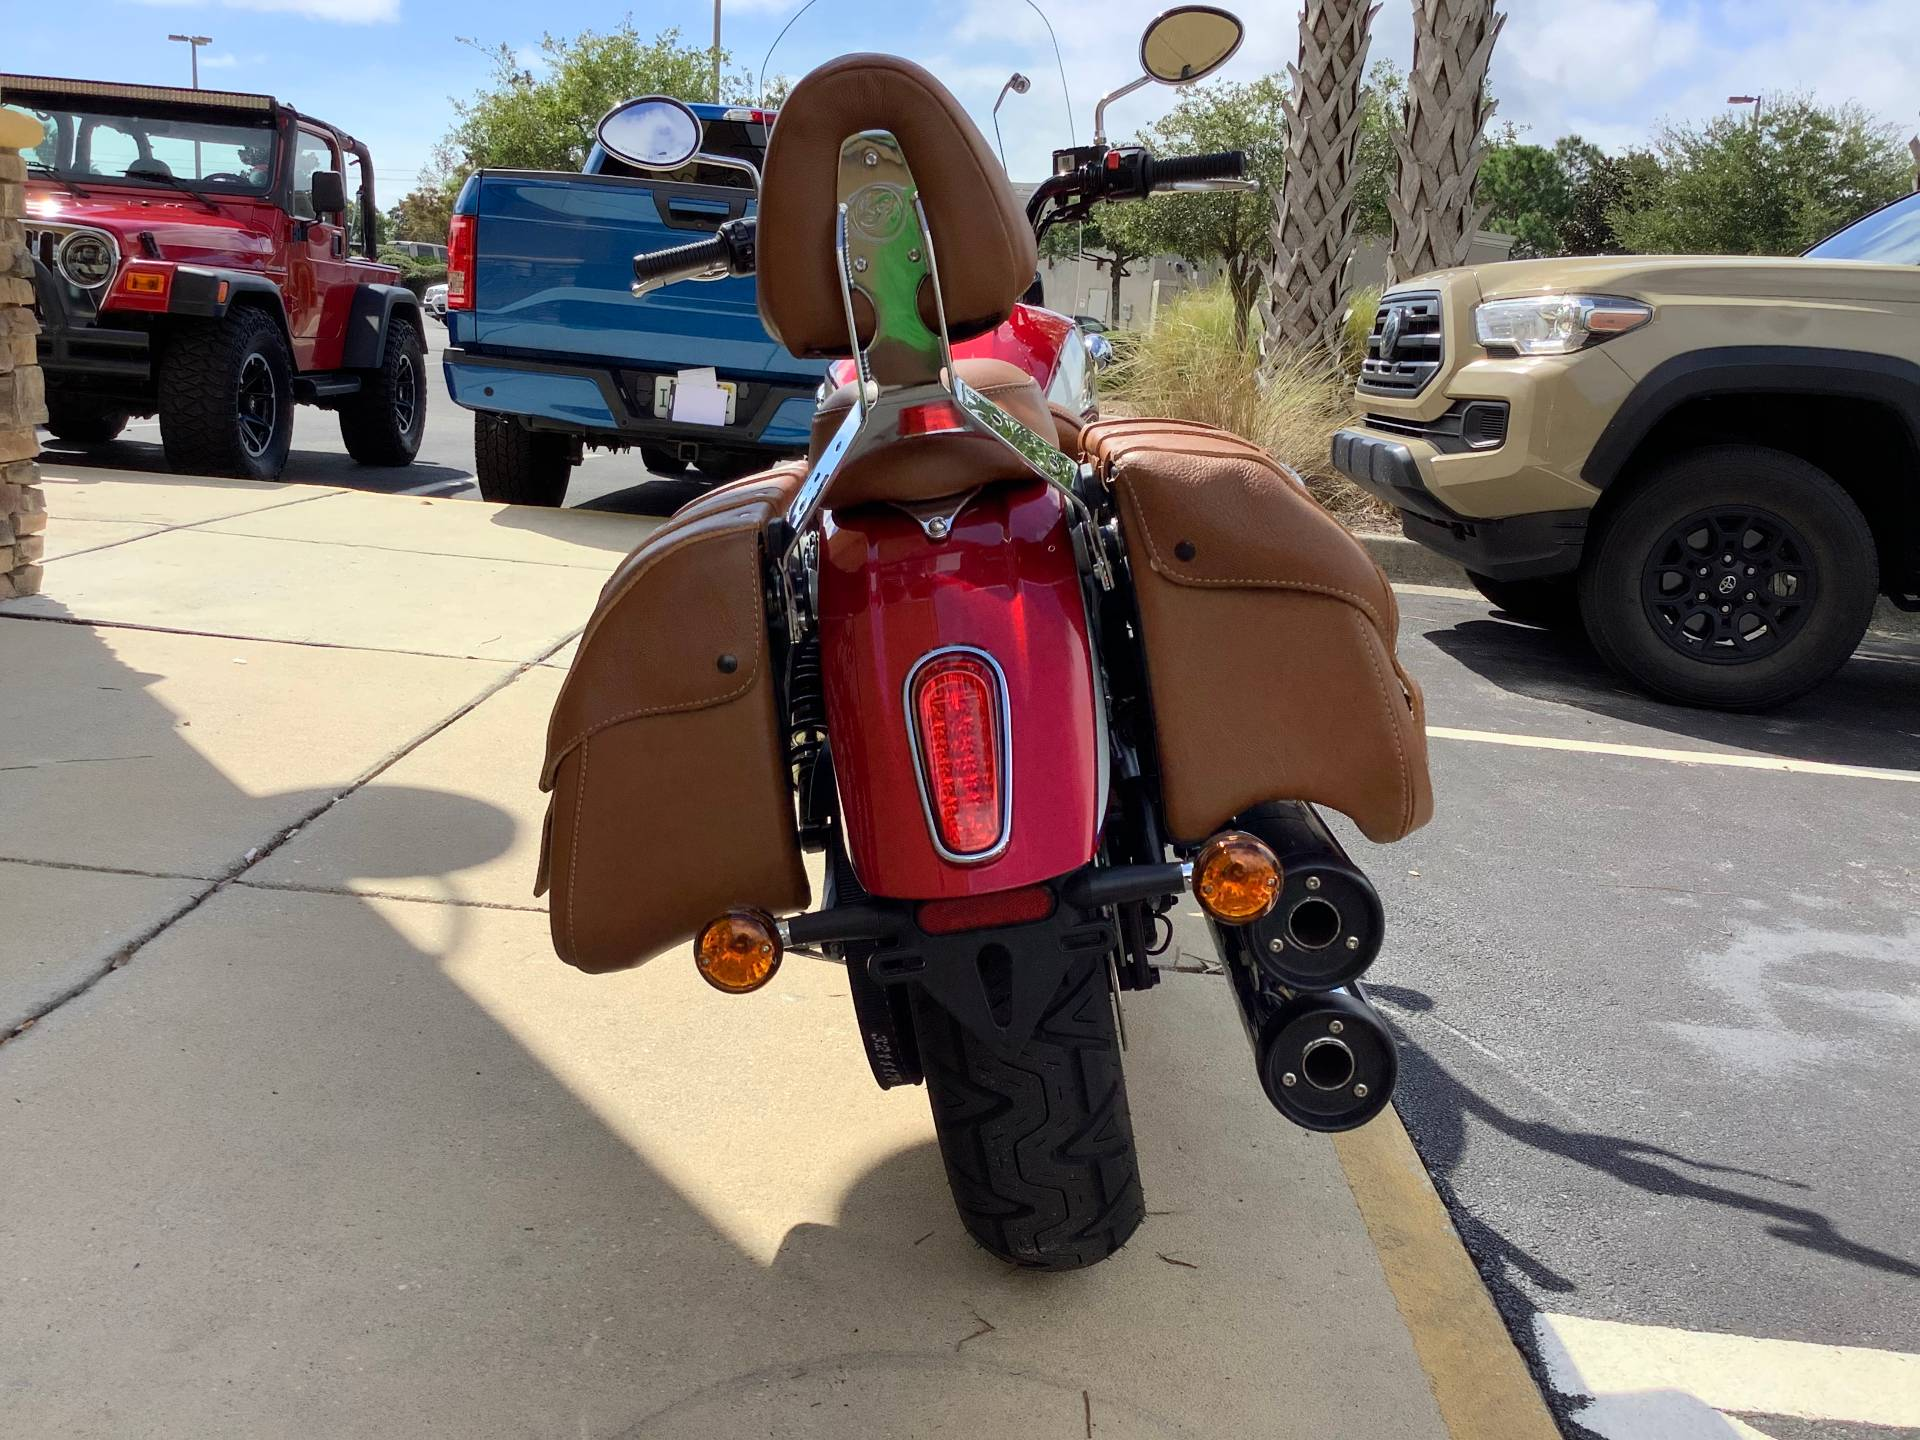 2019 Indian SCOUT SIXTY ICON in Panama City Beach, Florida - Photo 7